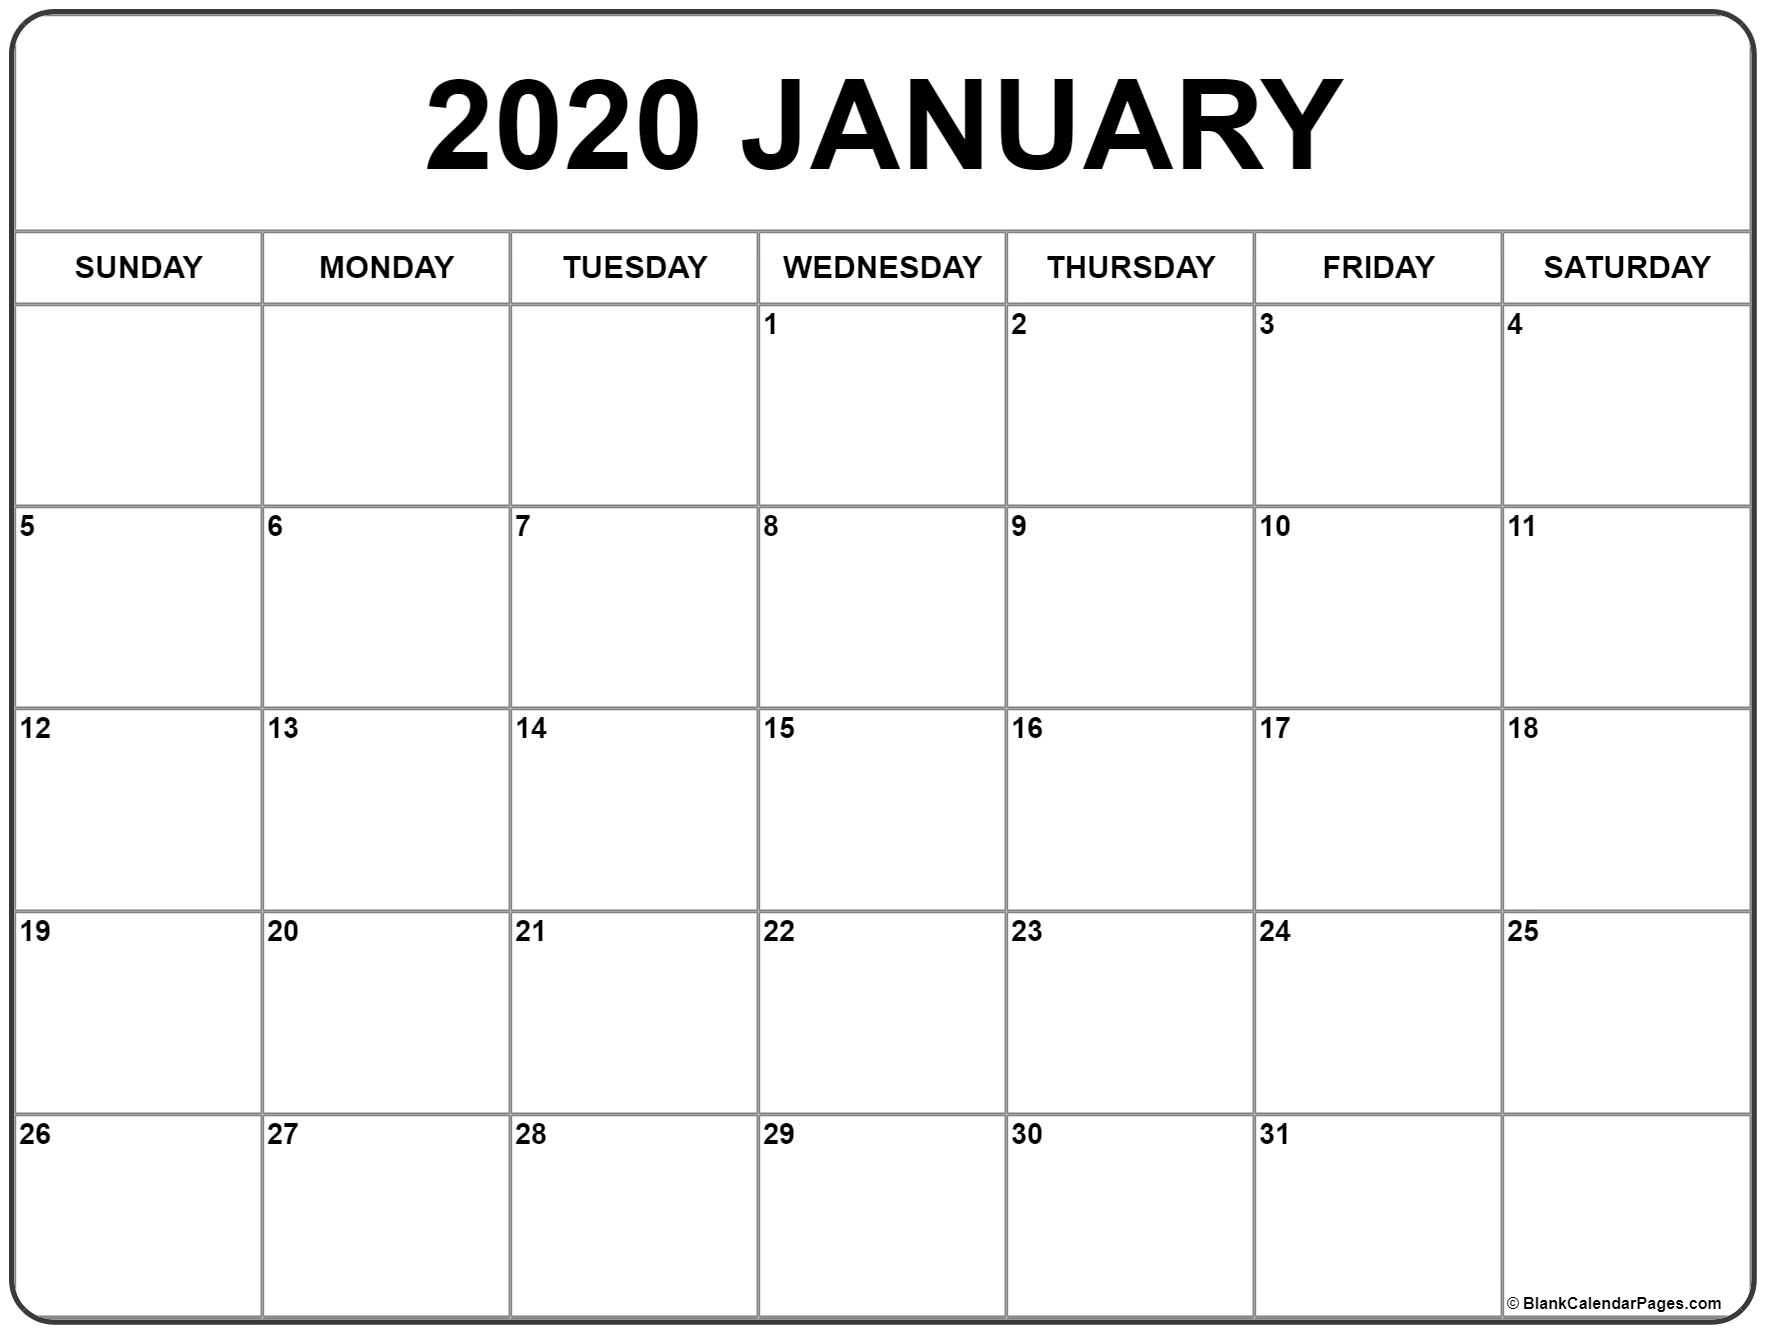 January 2020 Calendar | Free Printable Monthly Calendars within Printable Month At A Glance Calendar 2020